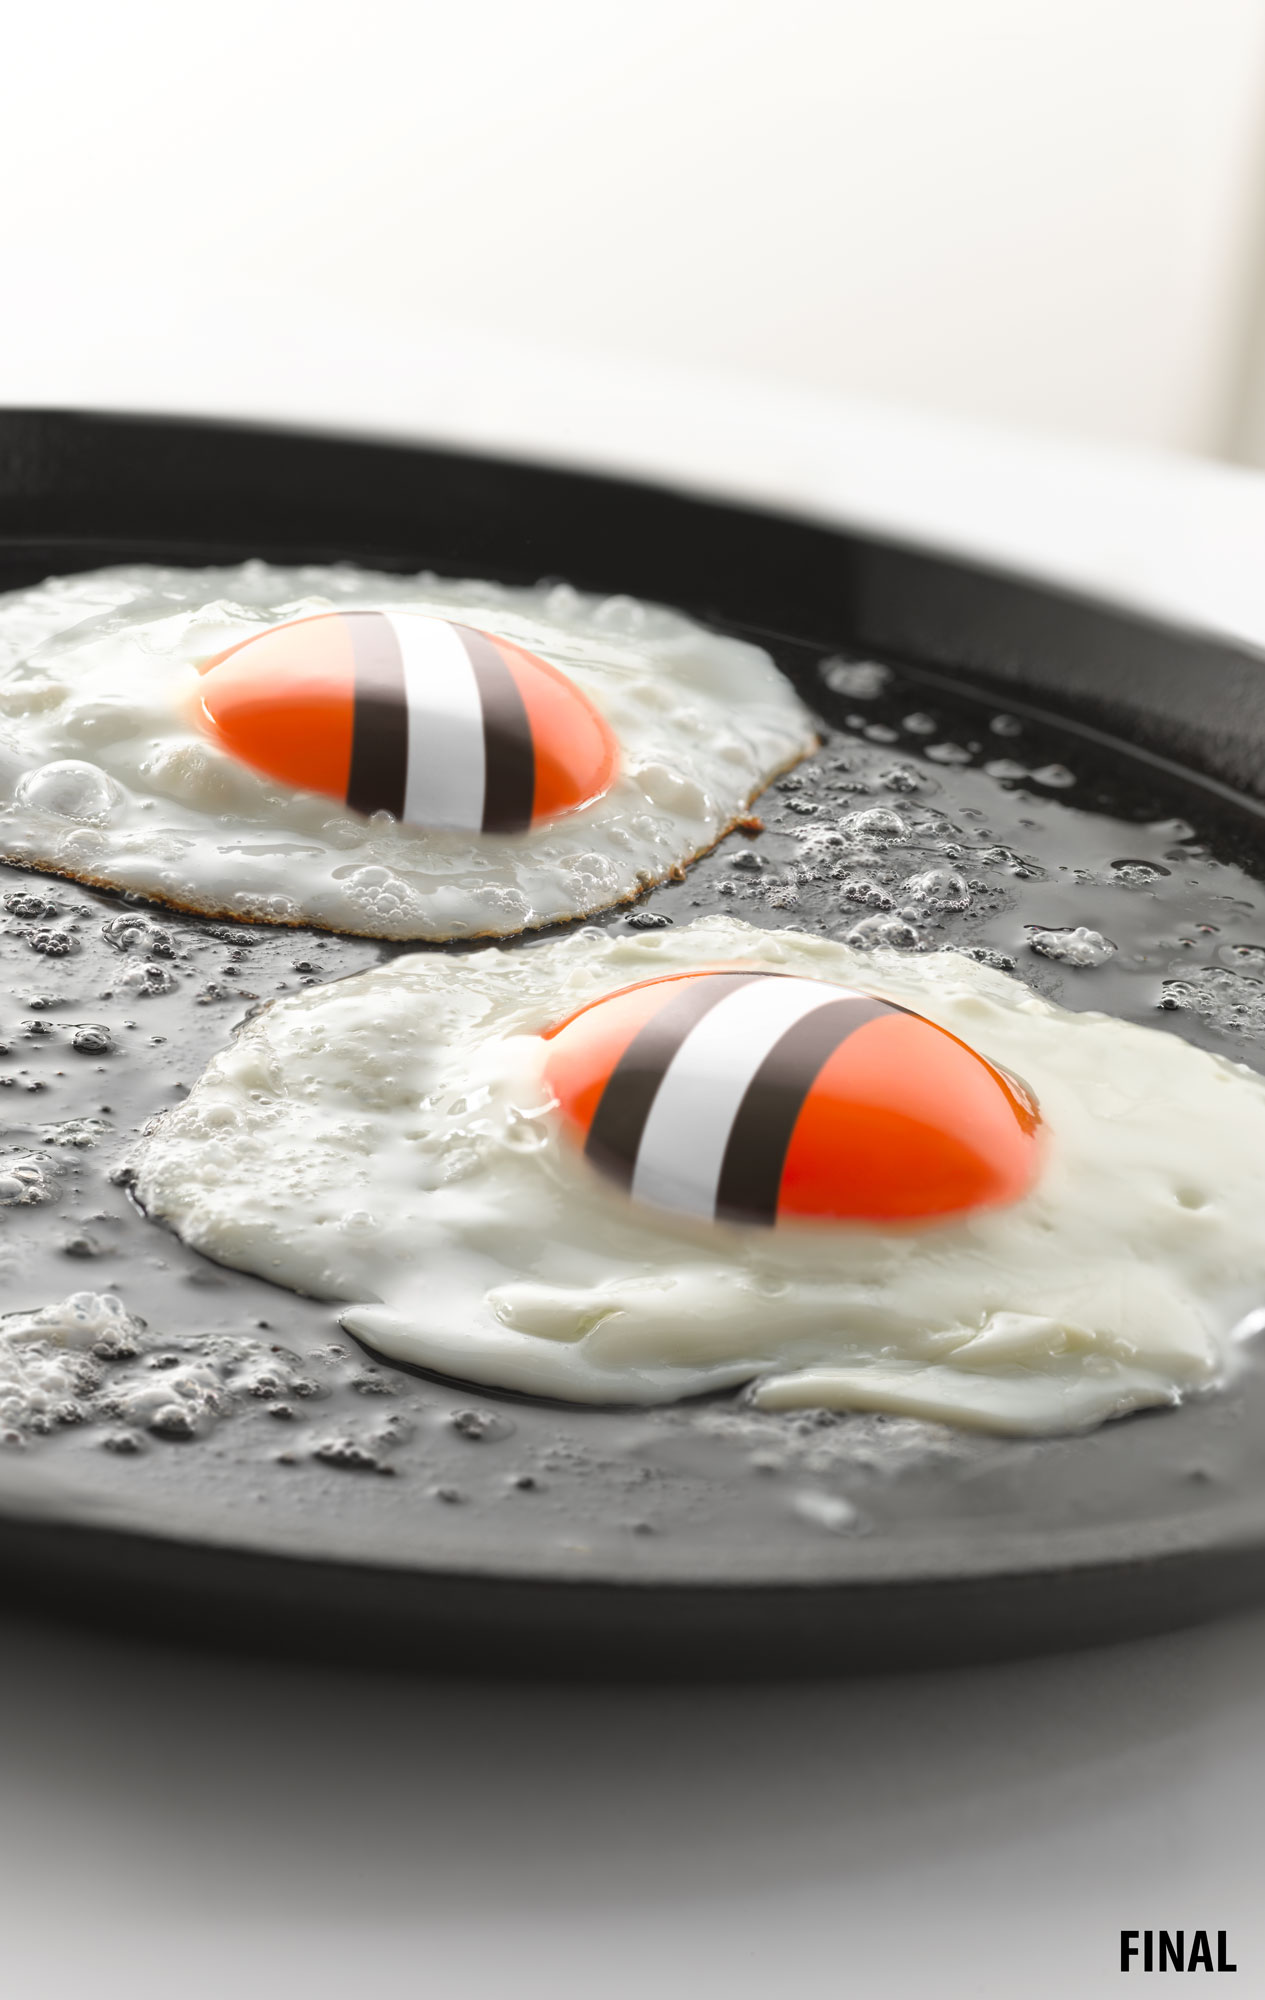 professional composite image of eggs with cleveland browns helmets as yolks